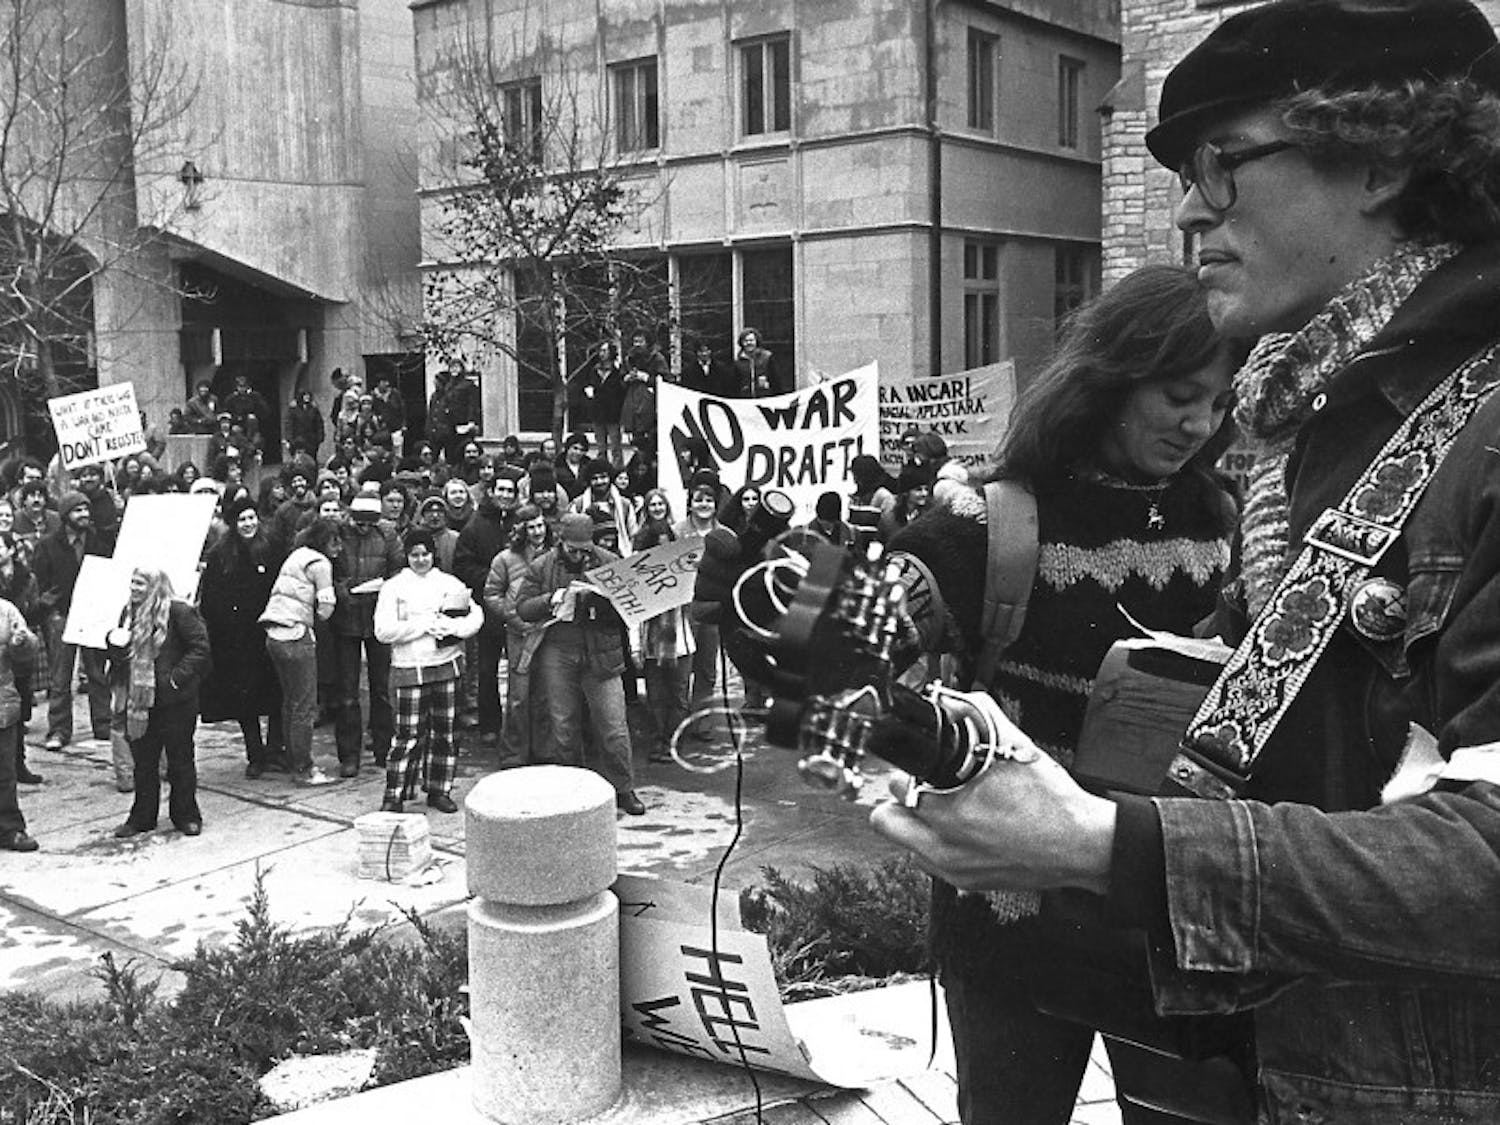 Photo of a Vietnam War protest at UW-Madison from the Daily Cardinal Archives.